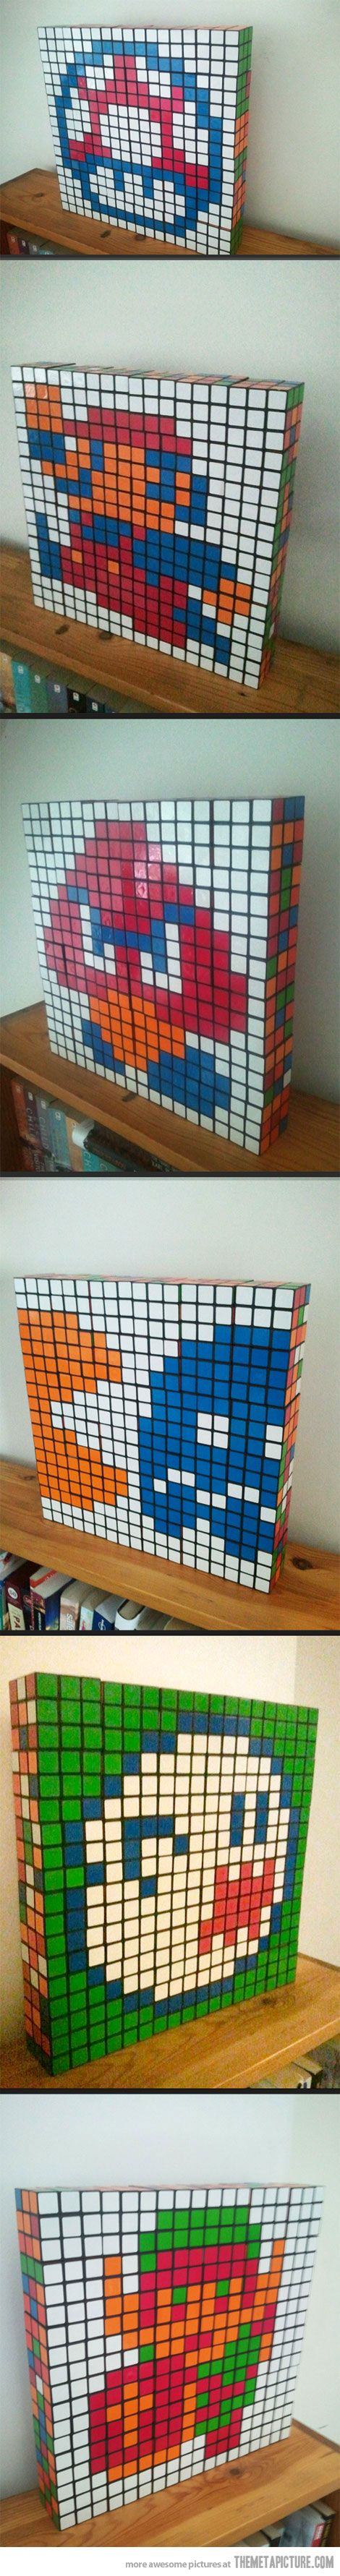 Classy videogame mosaic art for your home arcade.  Well, for my home arcade.  Get your own!